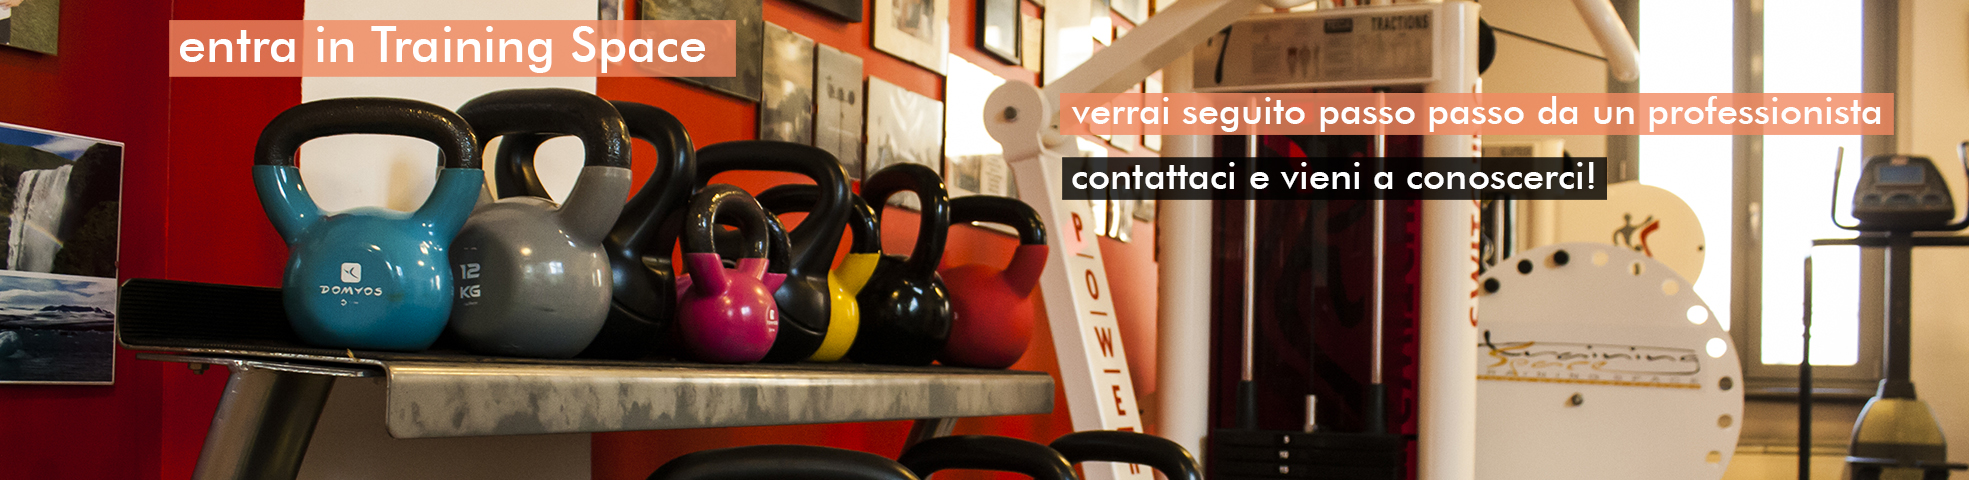 training space palestra personal trainer